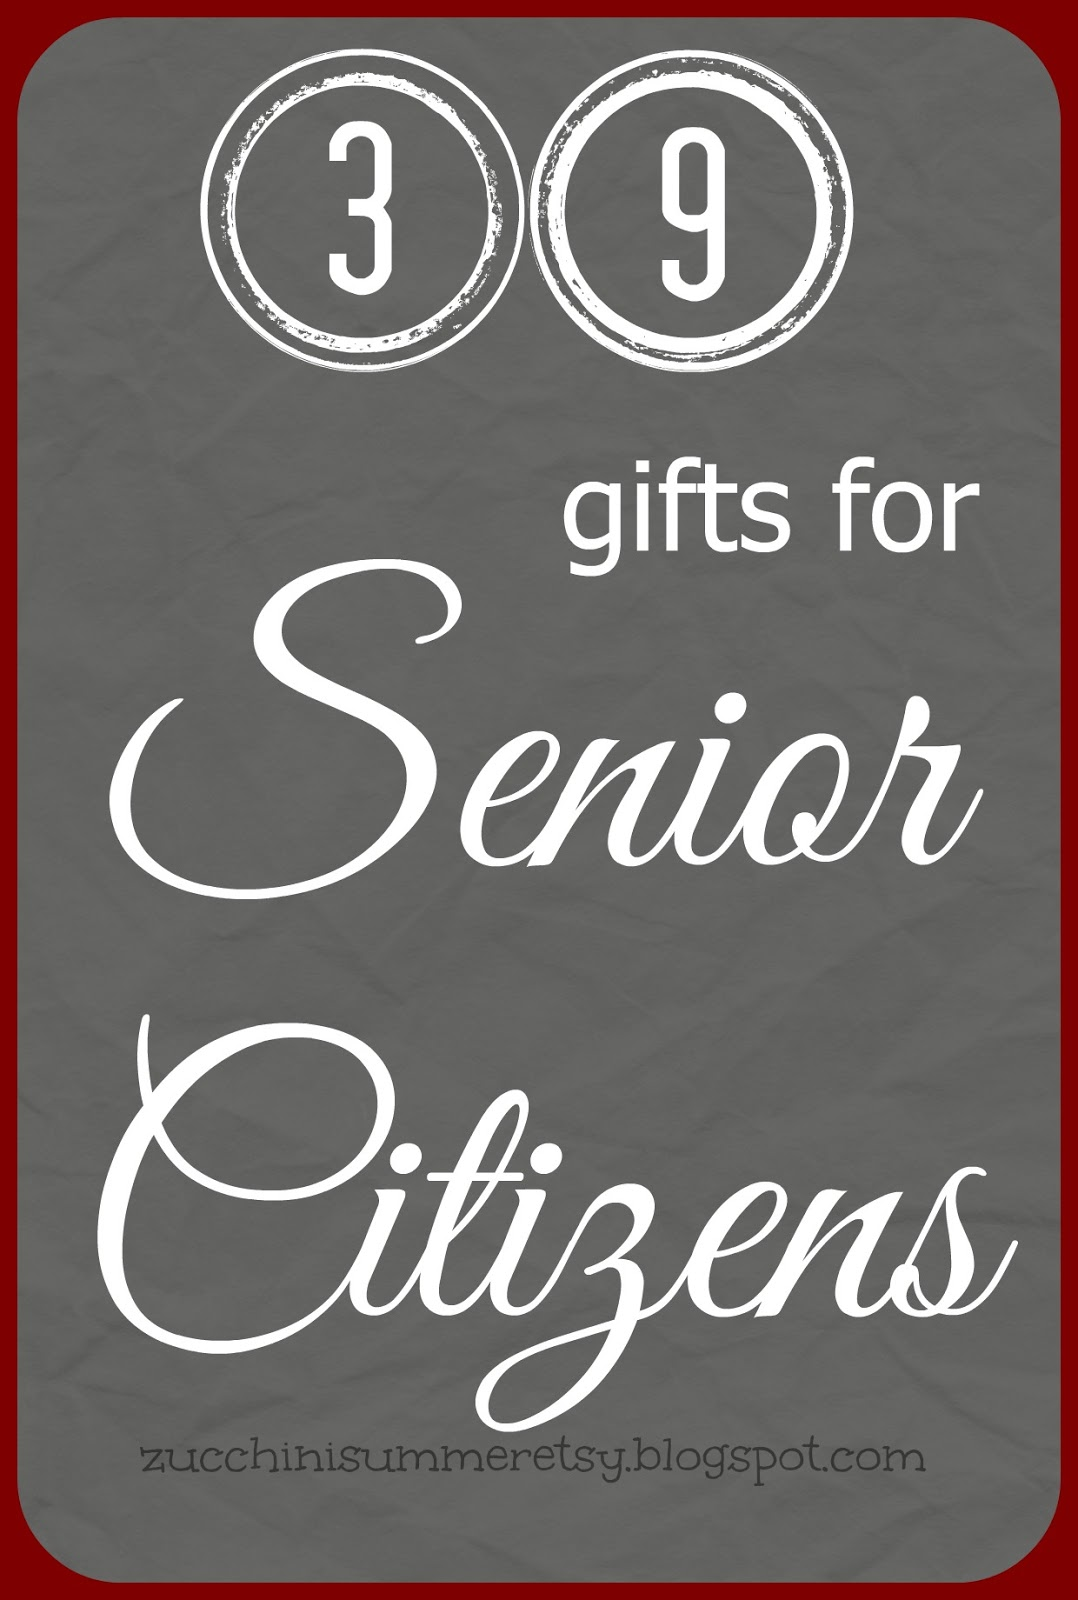 Gifts For Senior Citizens